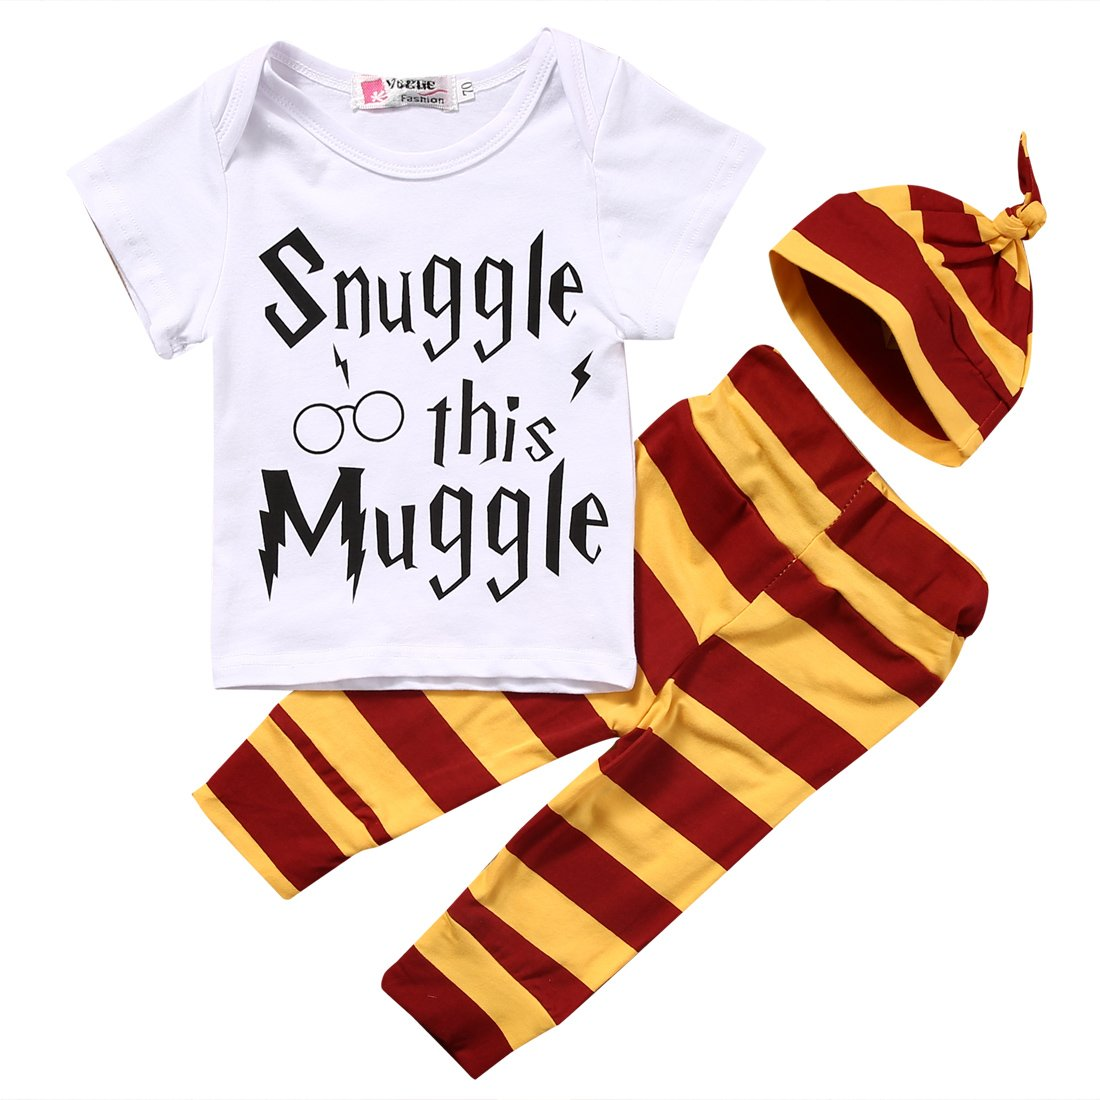 Baby Snuggle this Muggle T-shirt and Striped Pants with Hat